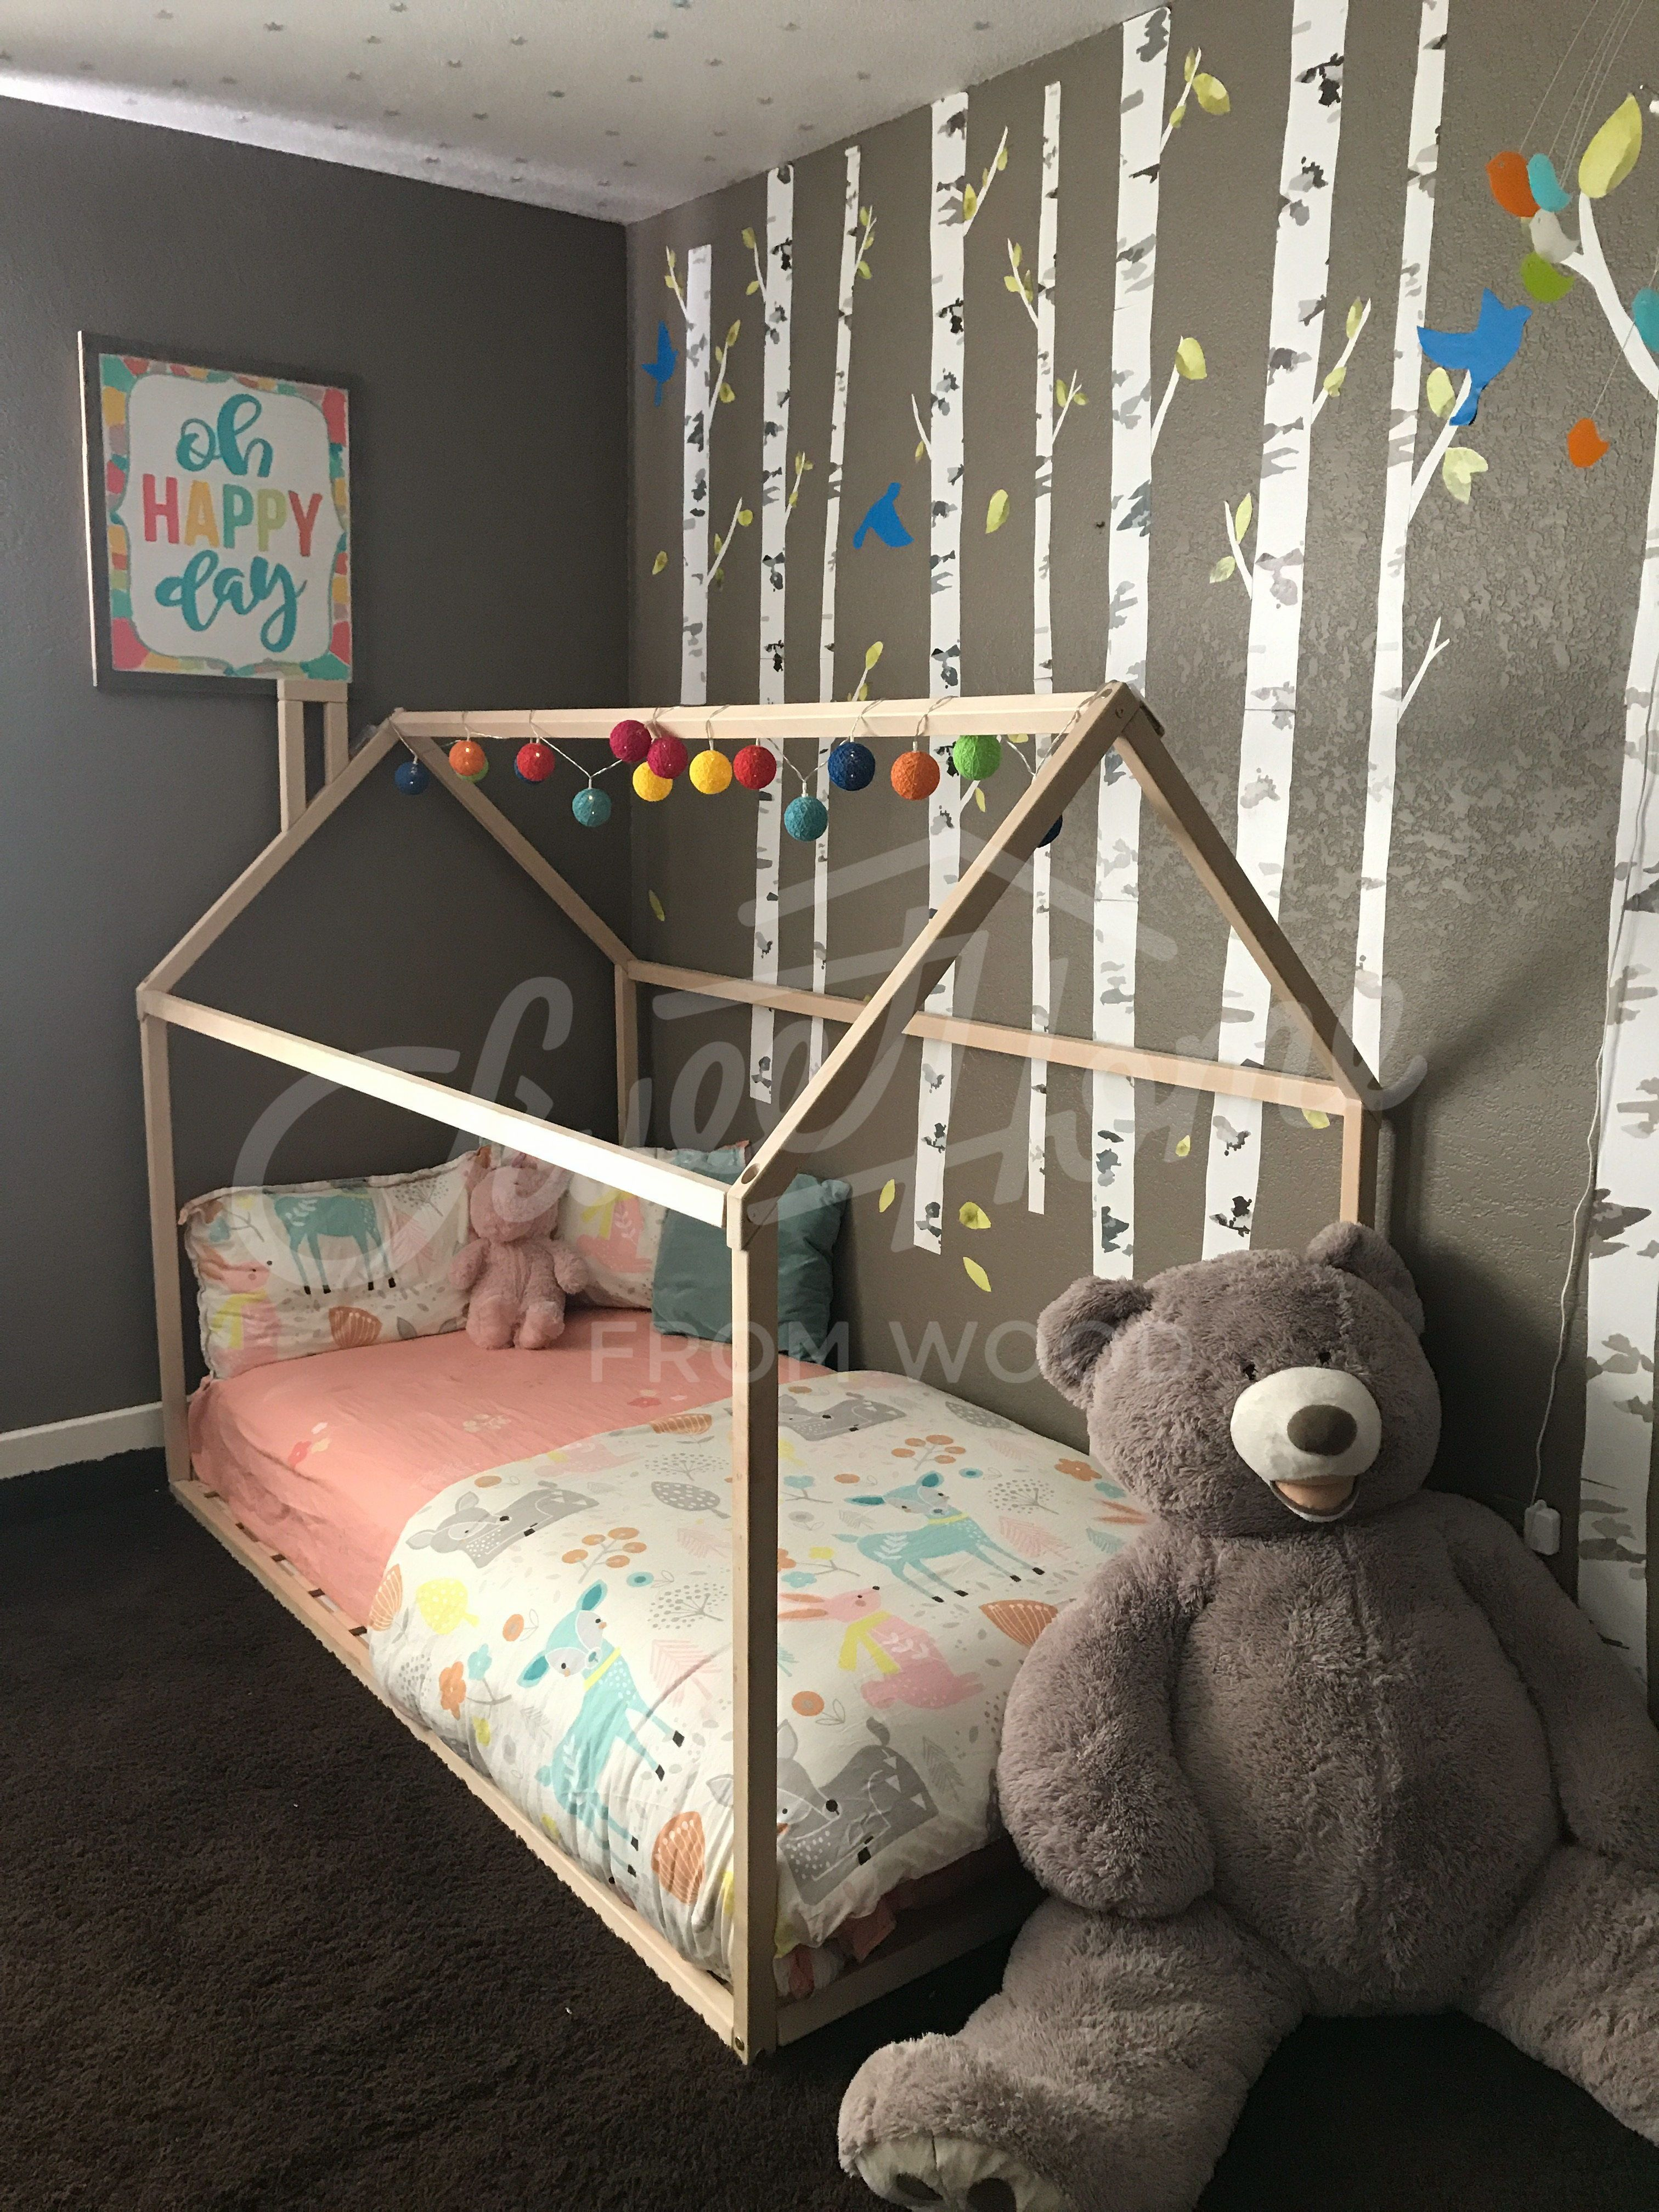 Toddler Bed House Shaped Bed Loft Bed Nursery Wood House Bed Etsy In 2020 Bed Tent Toddler Bed Girl Room